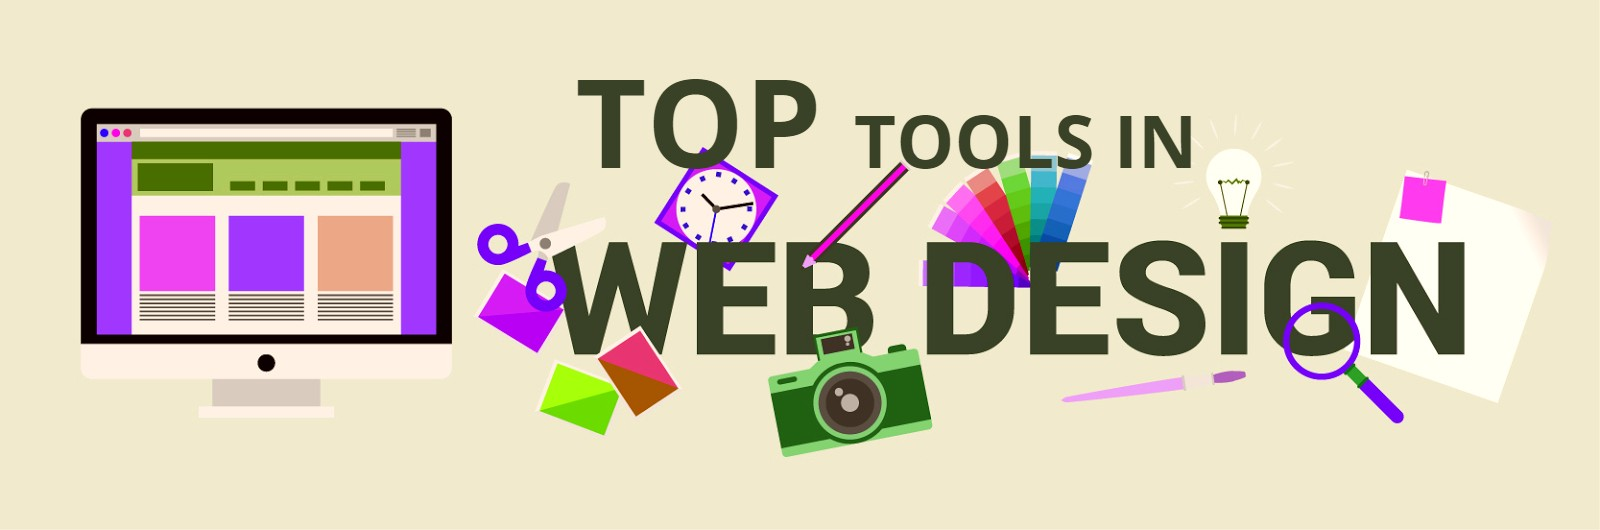 Top Most Used Tools In Web Designing By Raman Kumar Medium